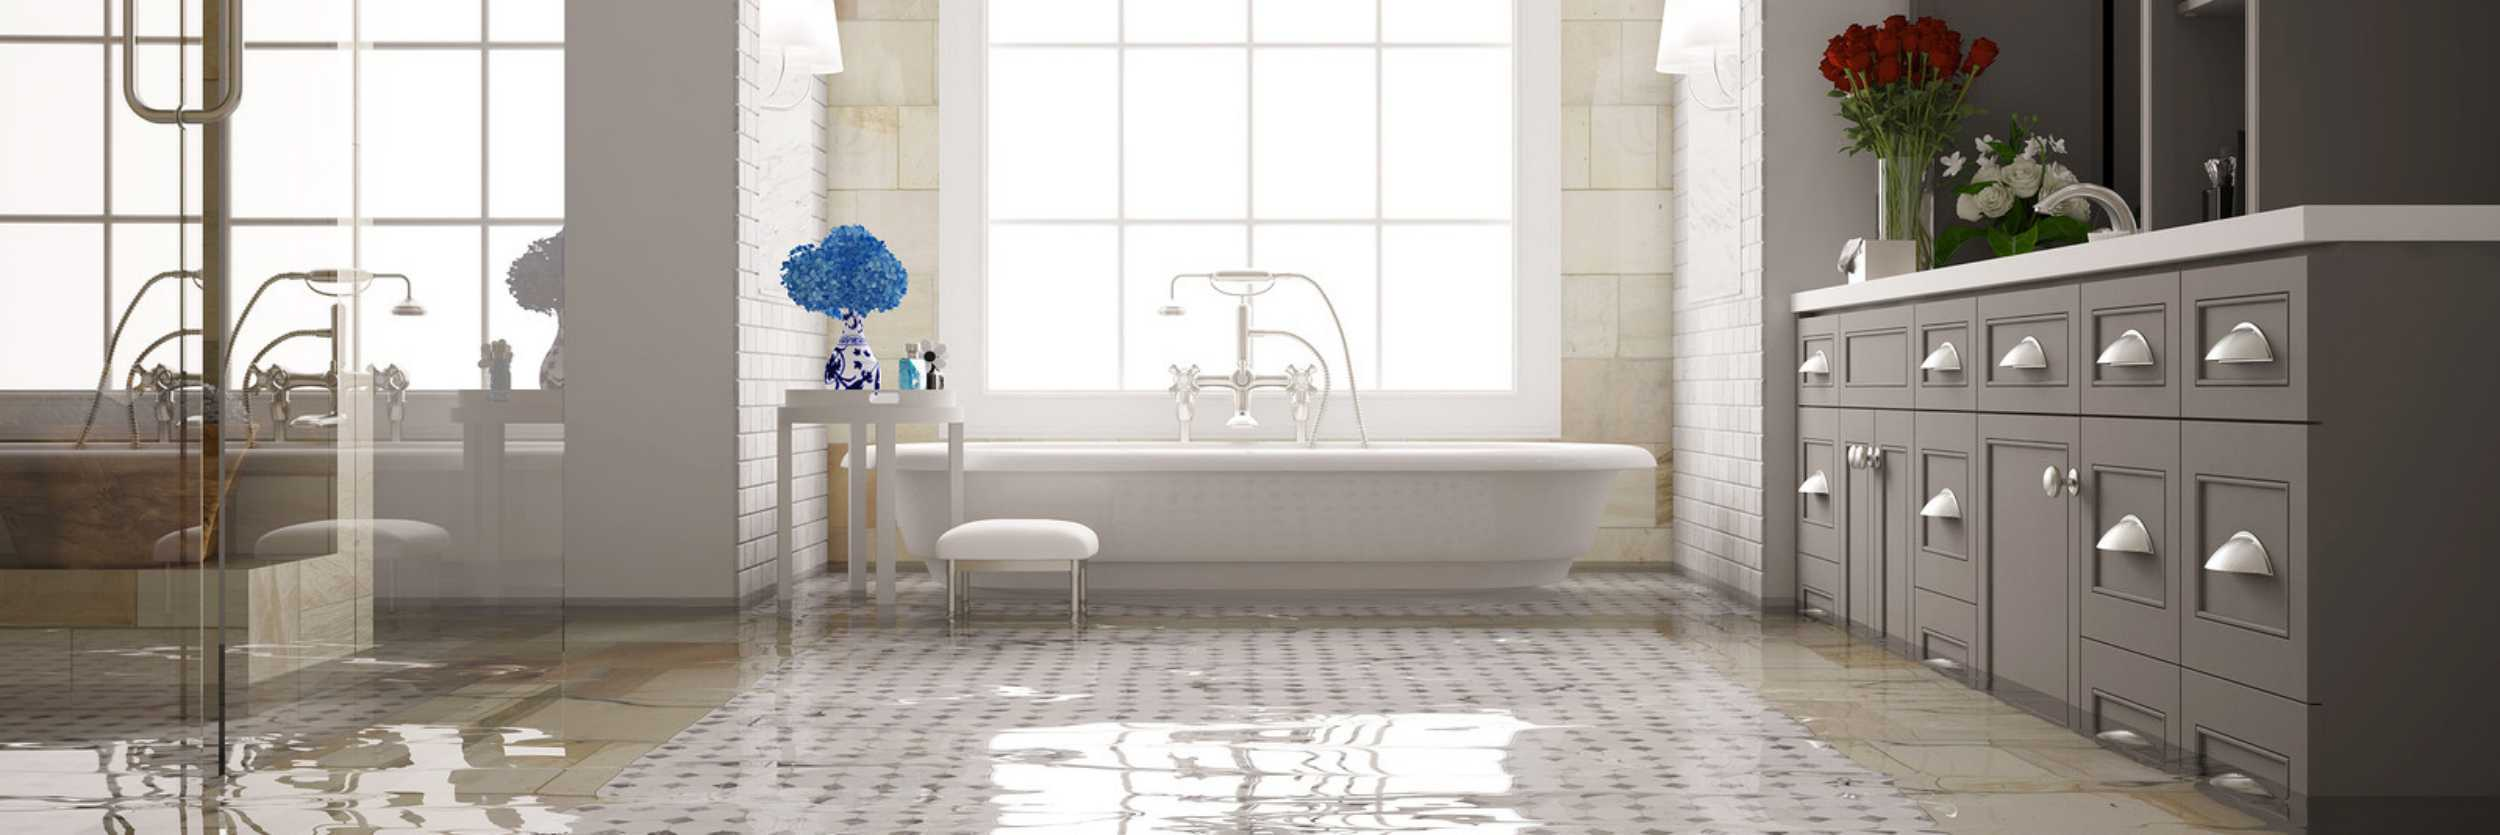 The sooner you stop the water damage the better  call us 24 7. Water Damage Minneapolis   Water Damage Restoration   Flood   MN